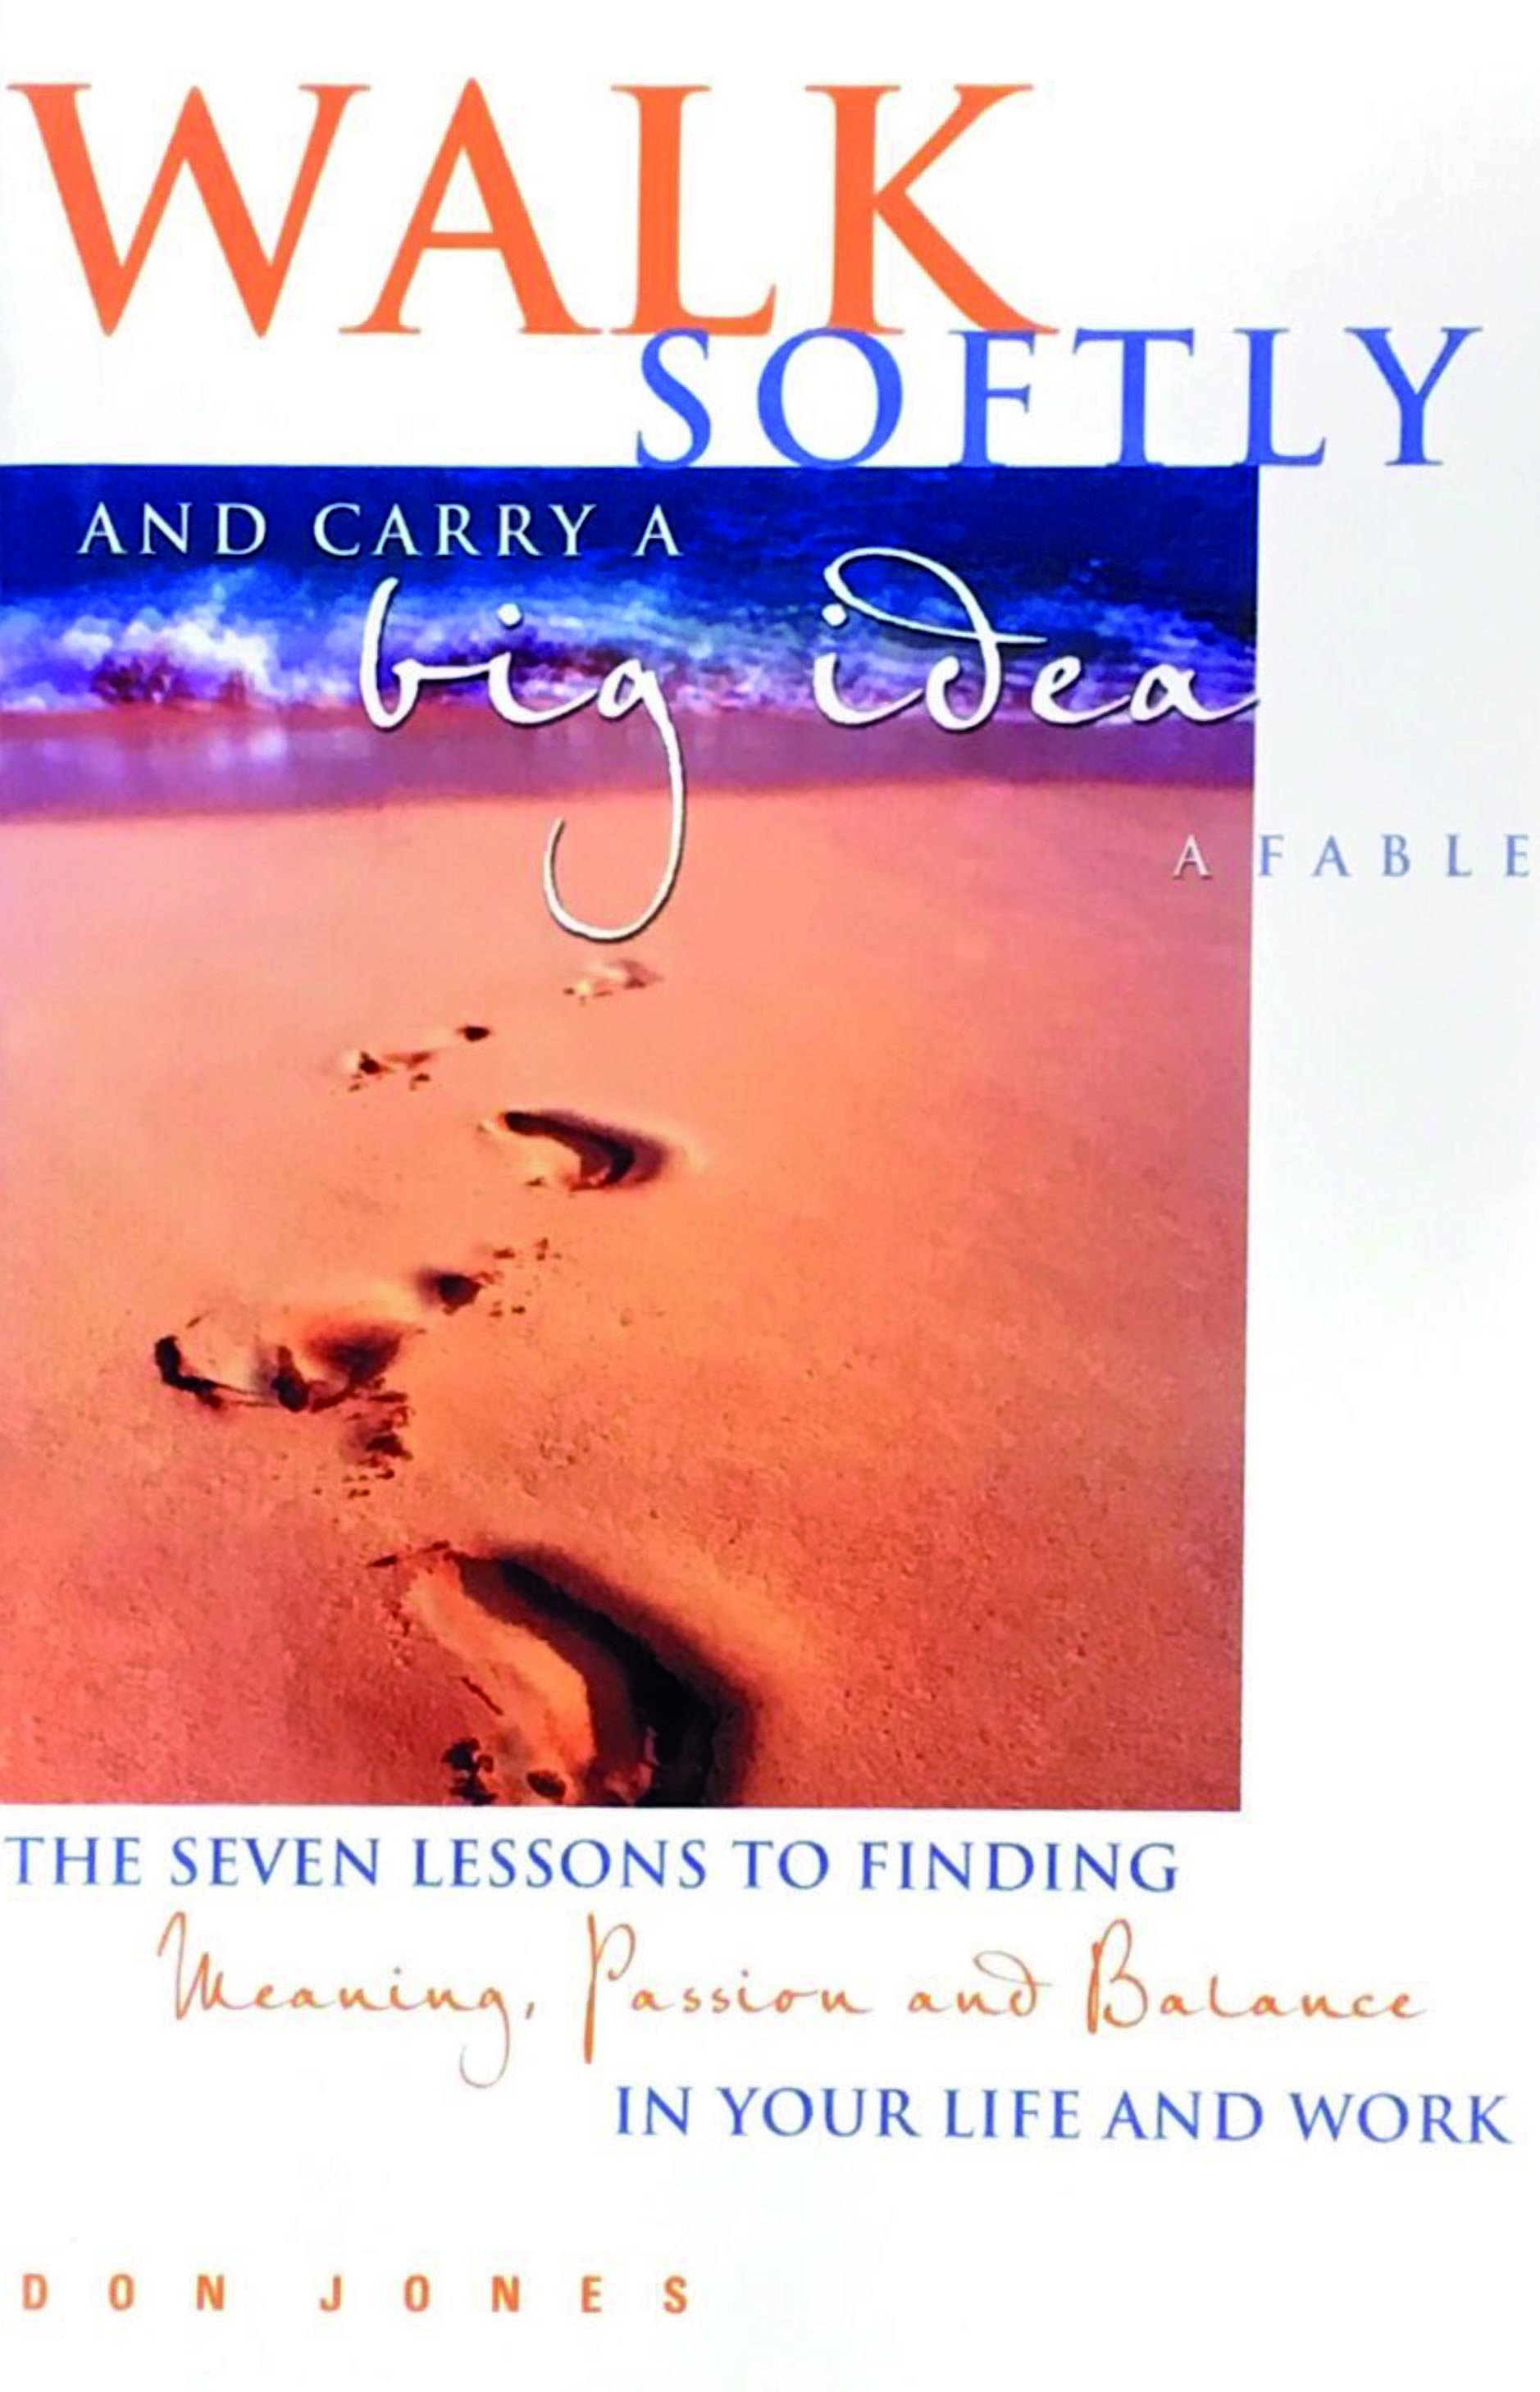 Walk softly and carry a big idea - A Fable The seven lessons to findin